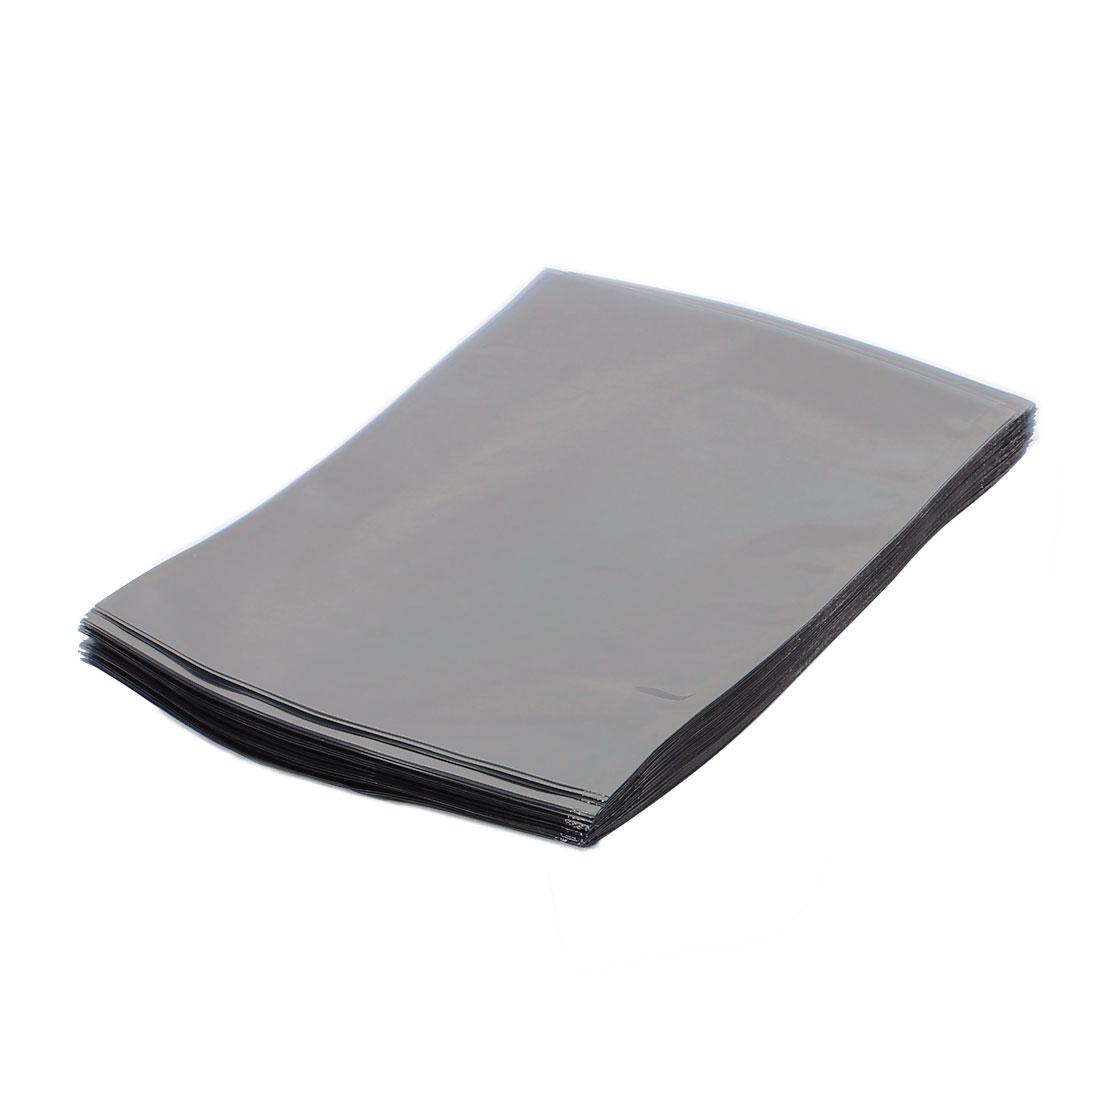 100 Pcs 140mm x 180mm Silver Tone Flat Open Top Anti Static Bag For Electronics